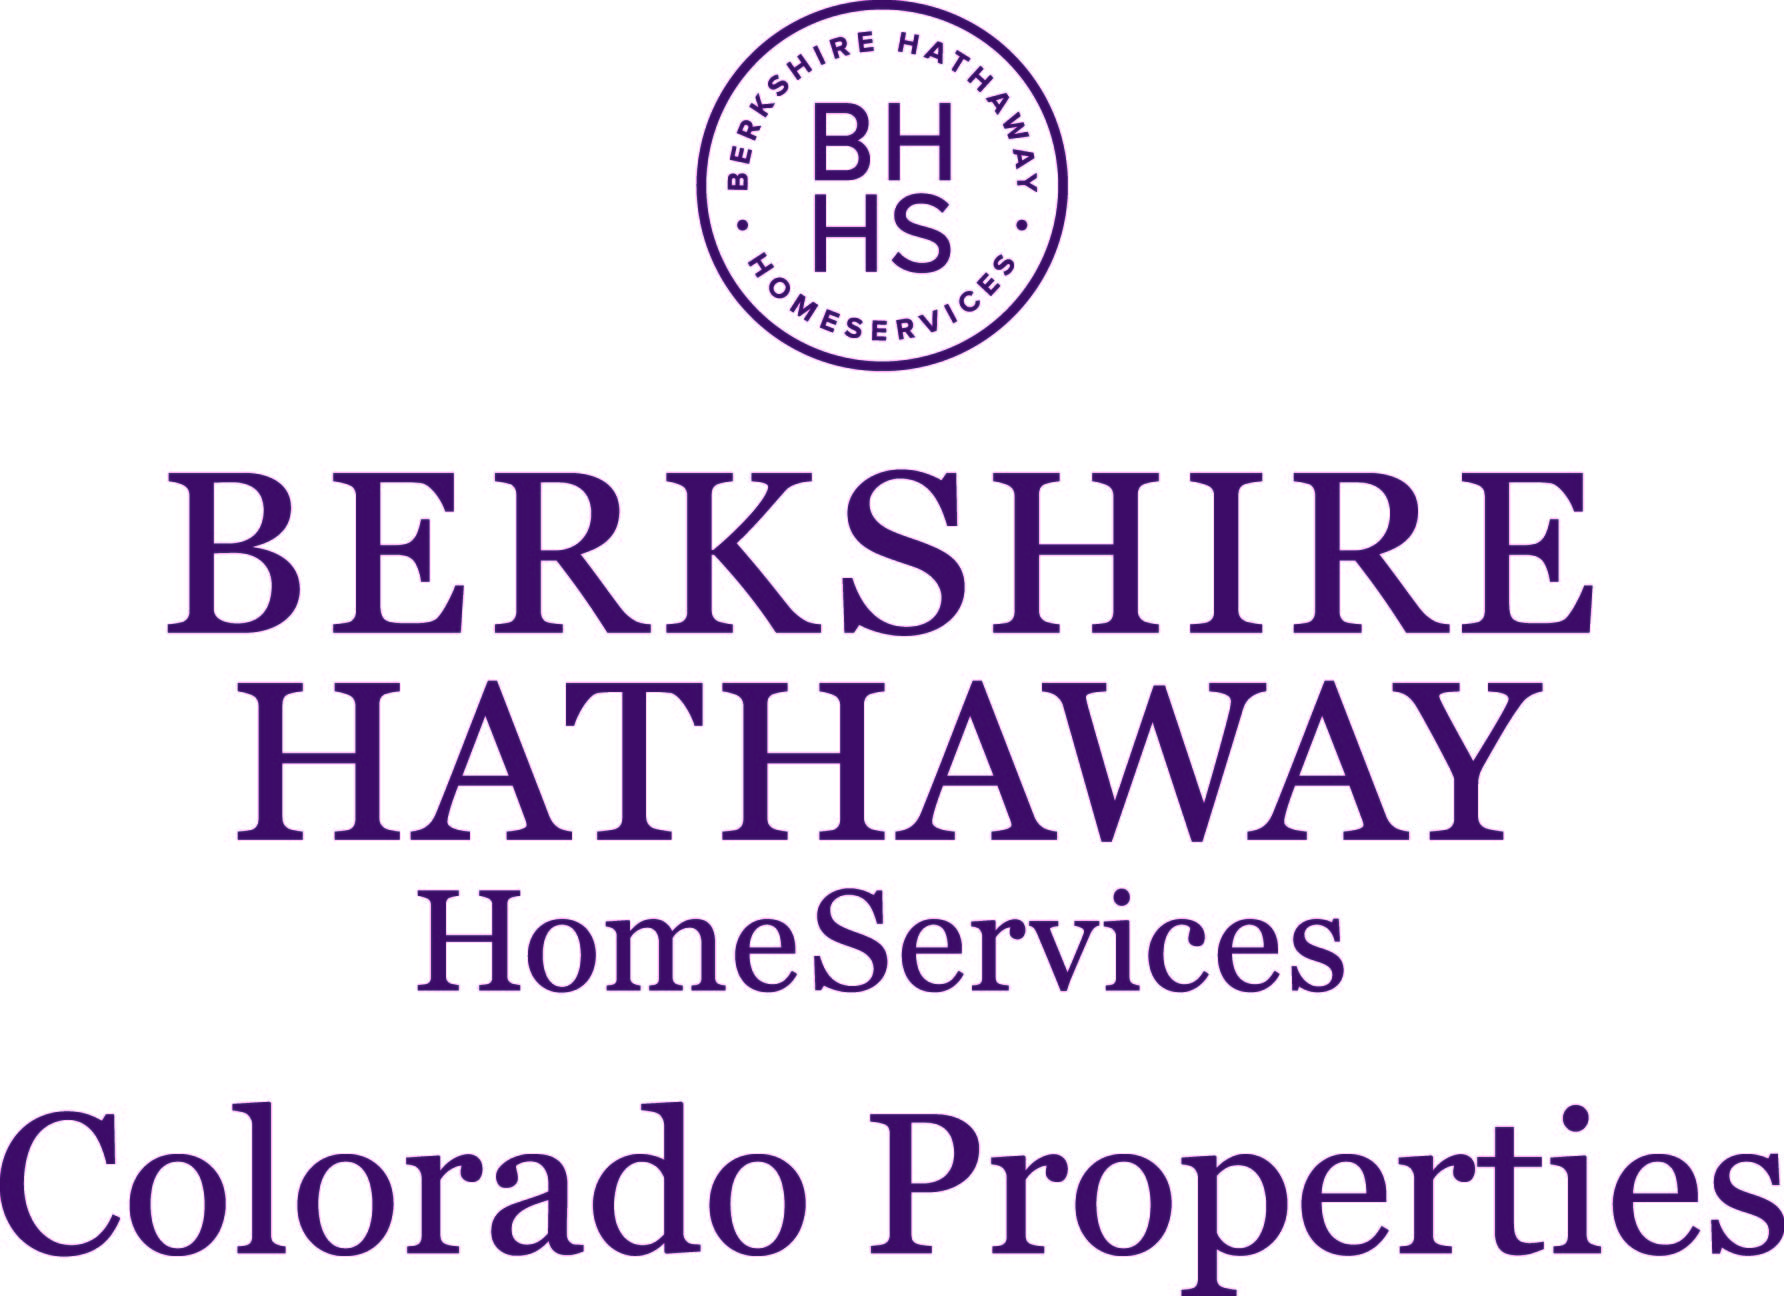 Berkshire Hathaway HomeServices Colorado Properties